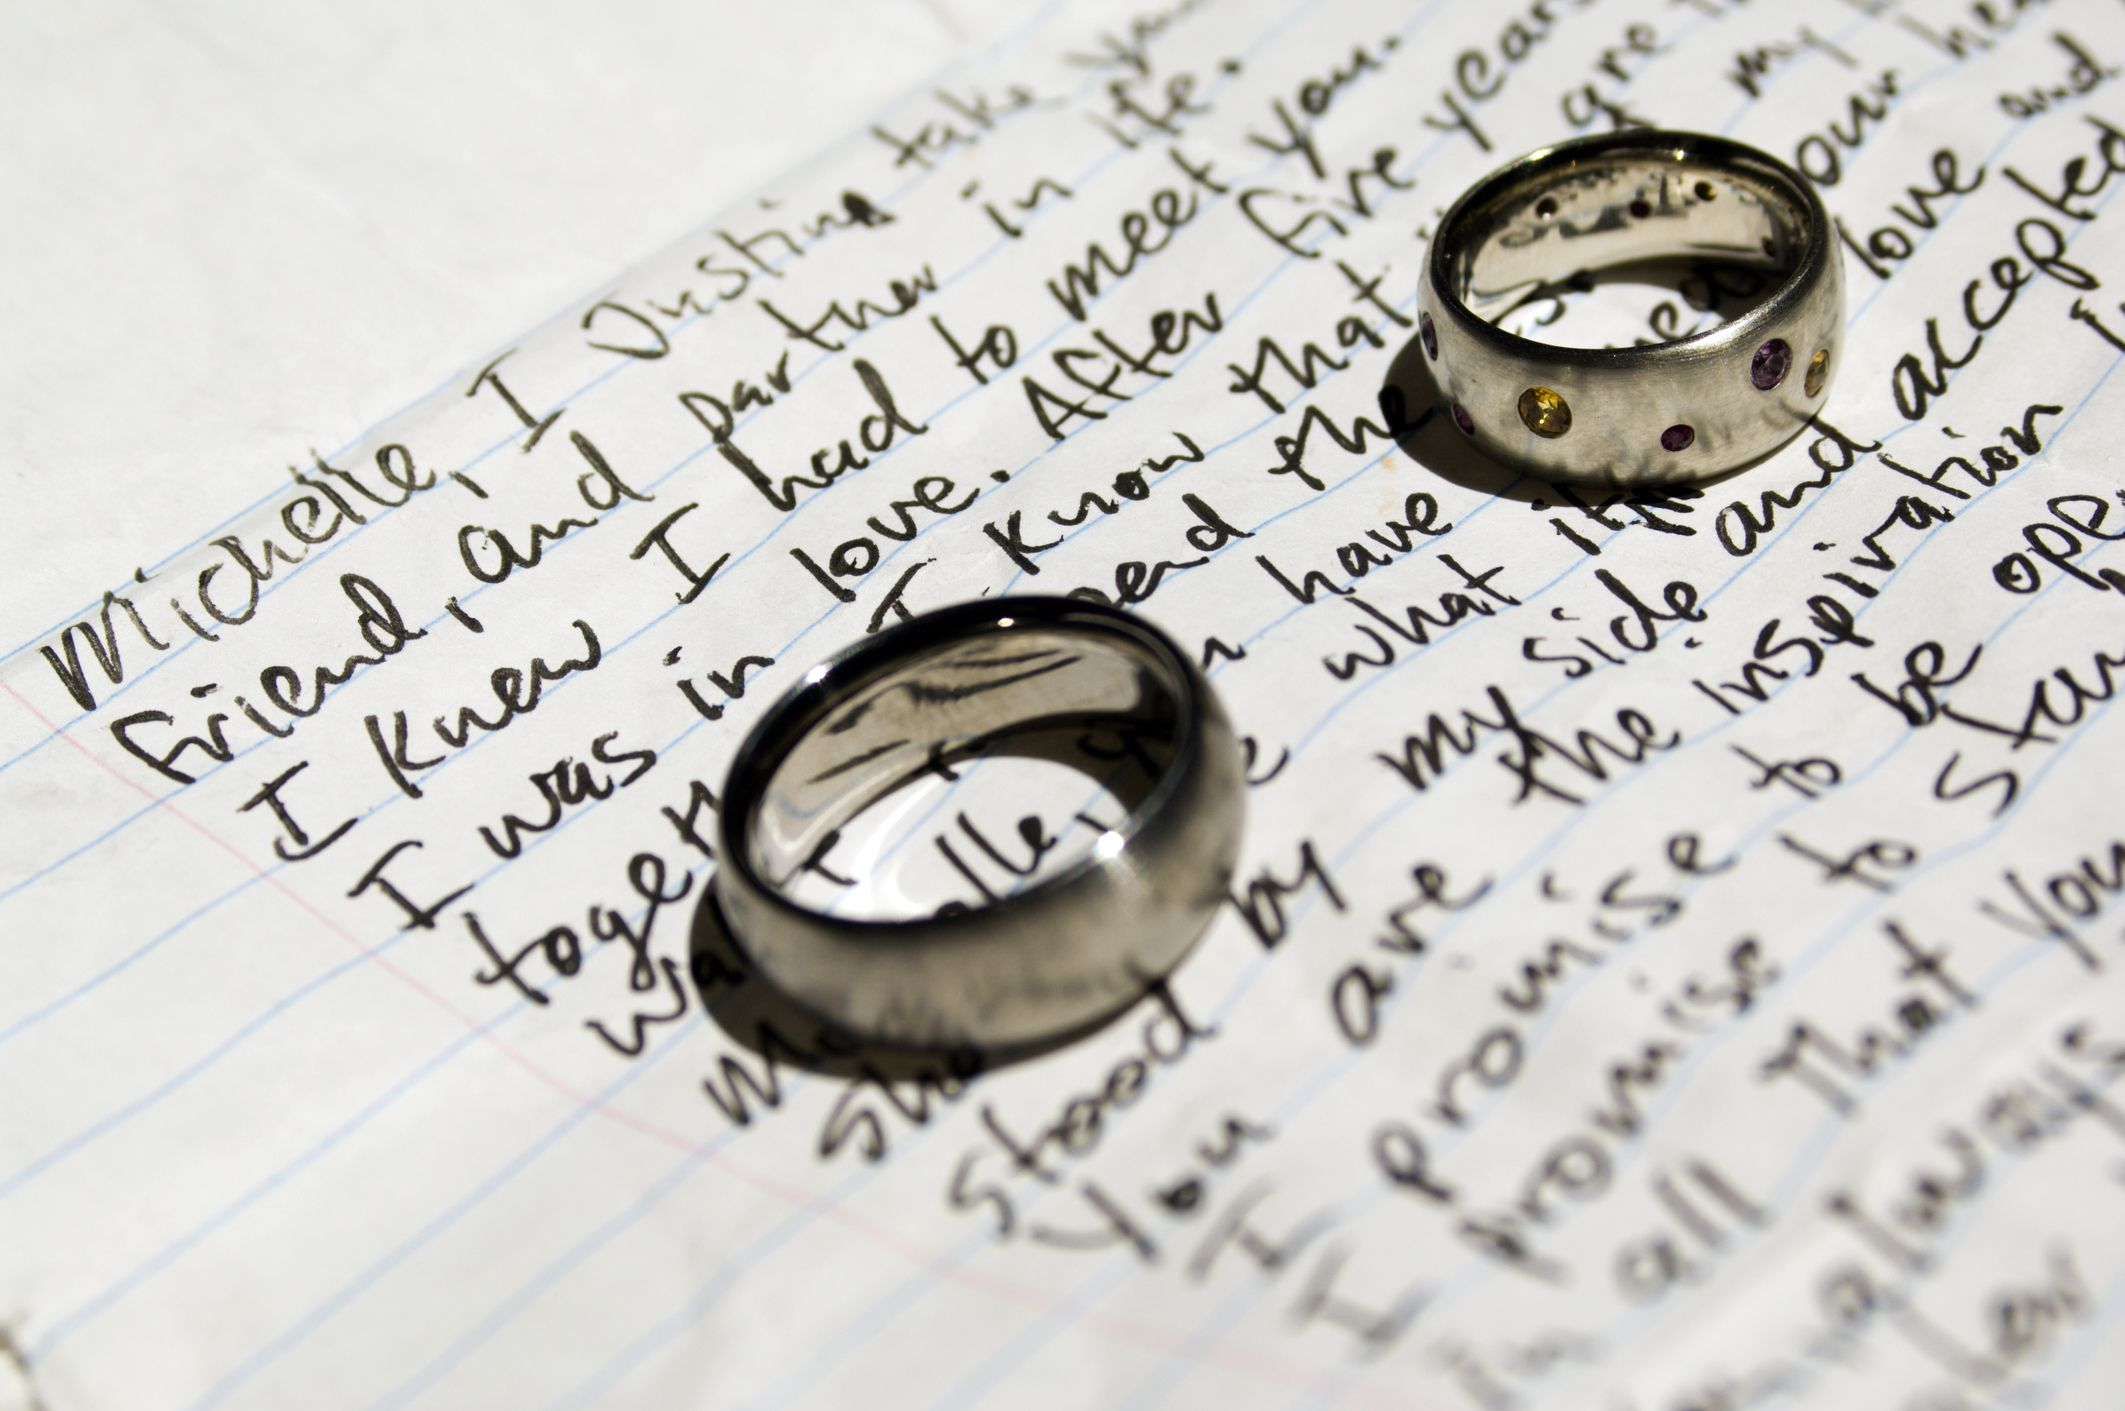 How to write wedding vows and samples 6 steps to your perfect personalized wedding vows junglespirit Choice Image